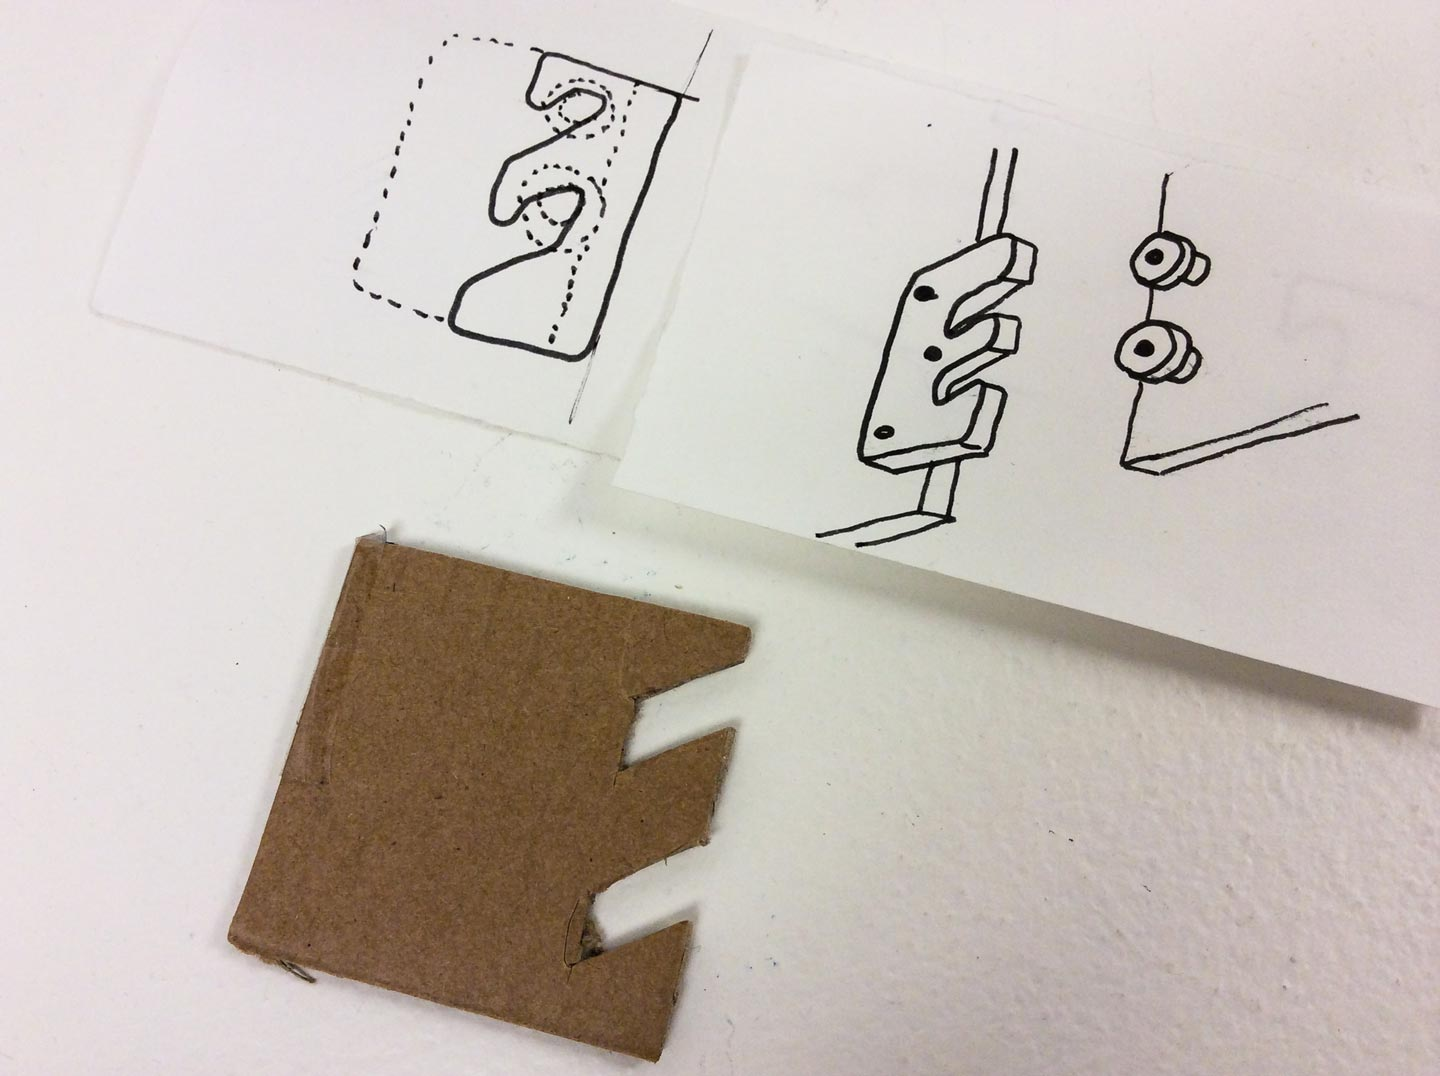 Sketch and prototype of small wooden bracket